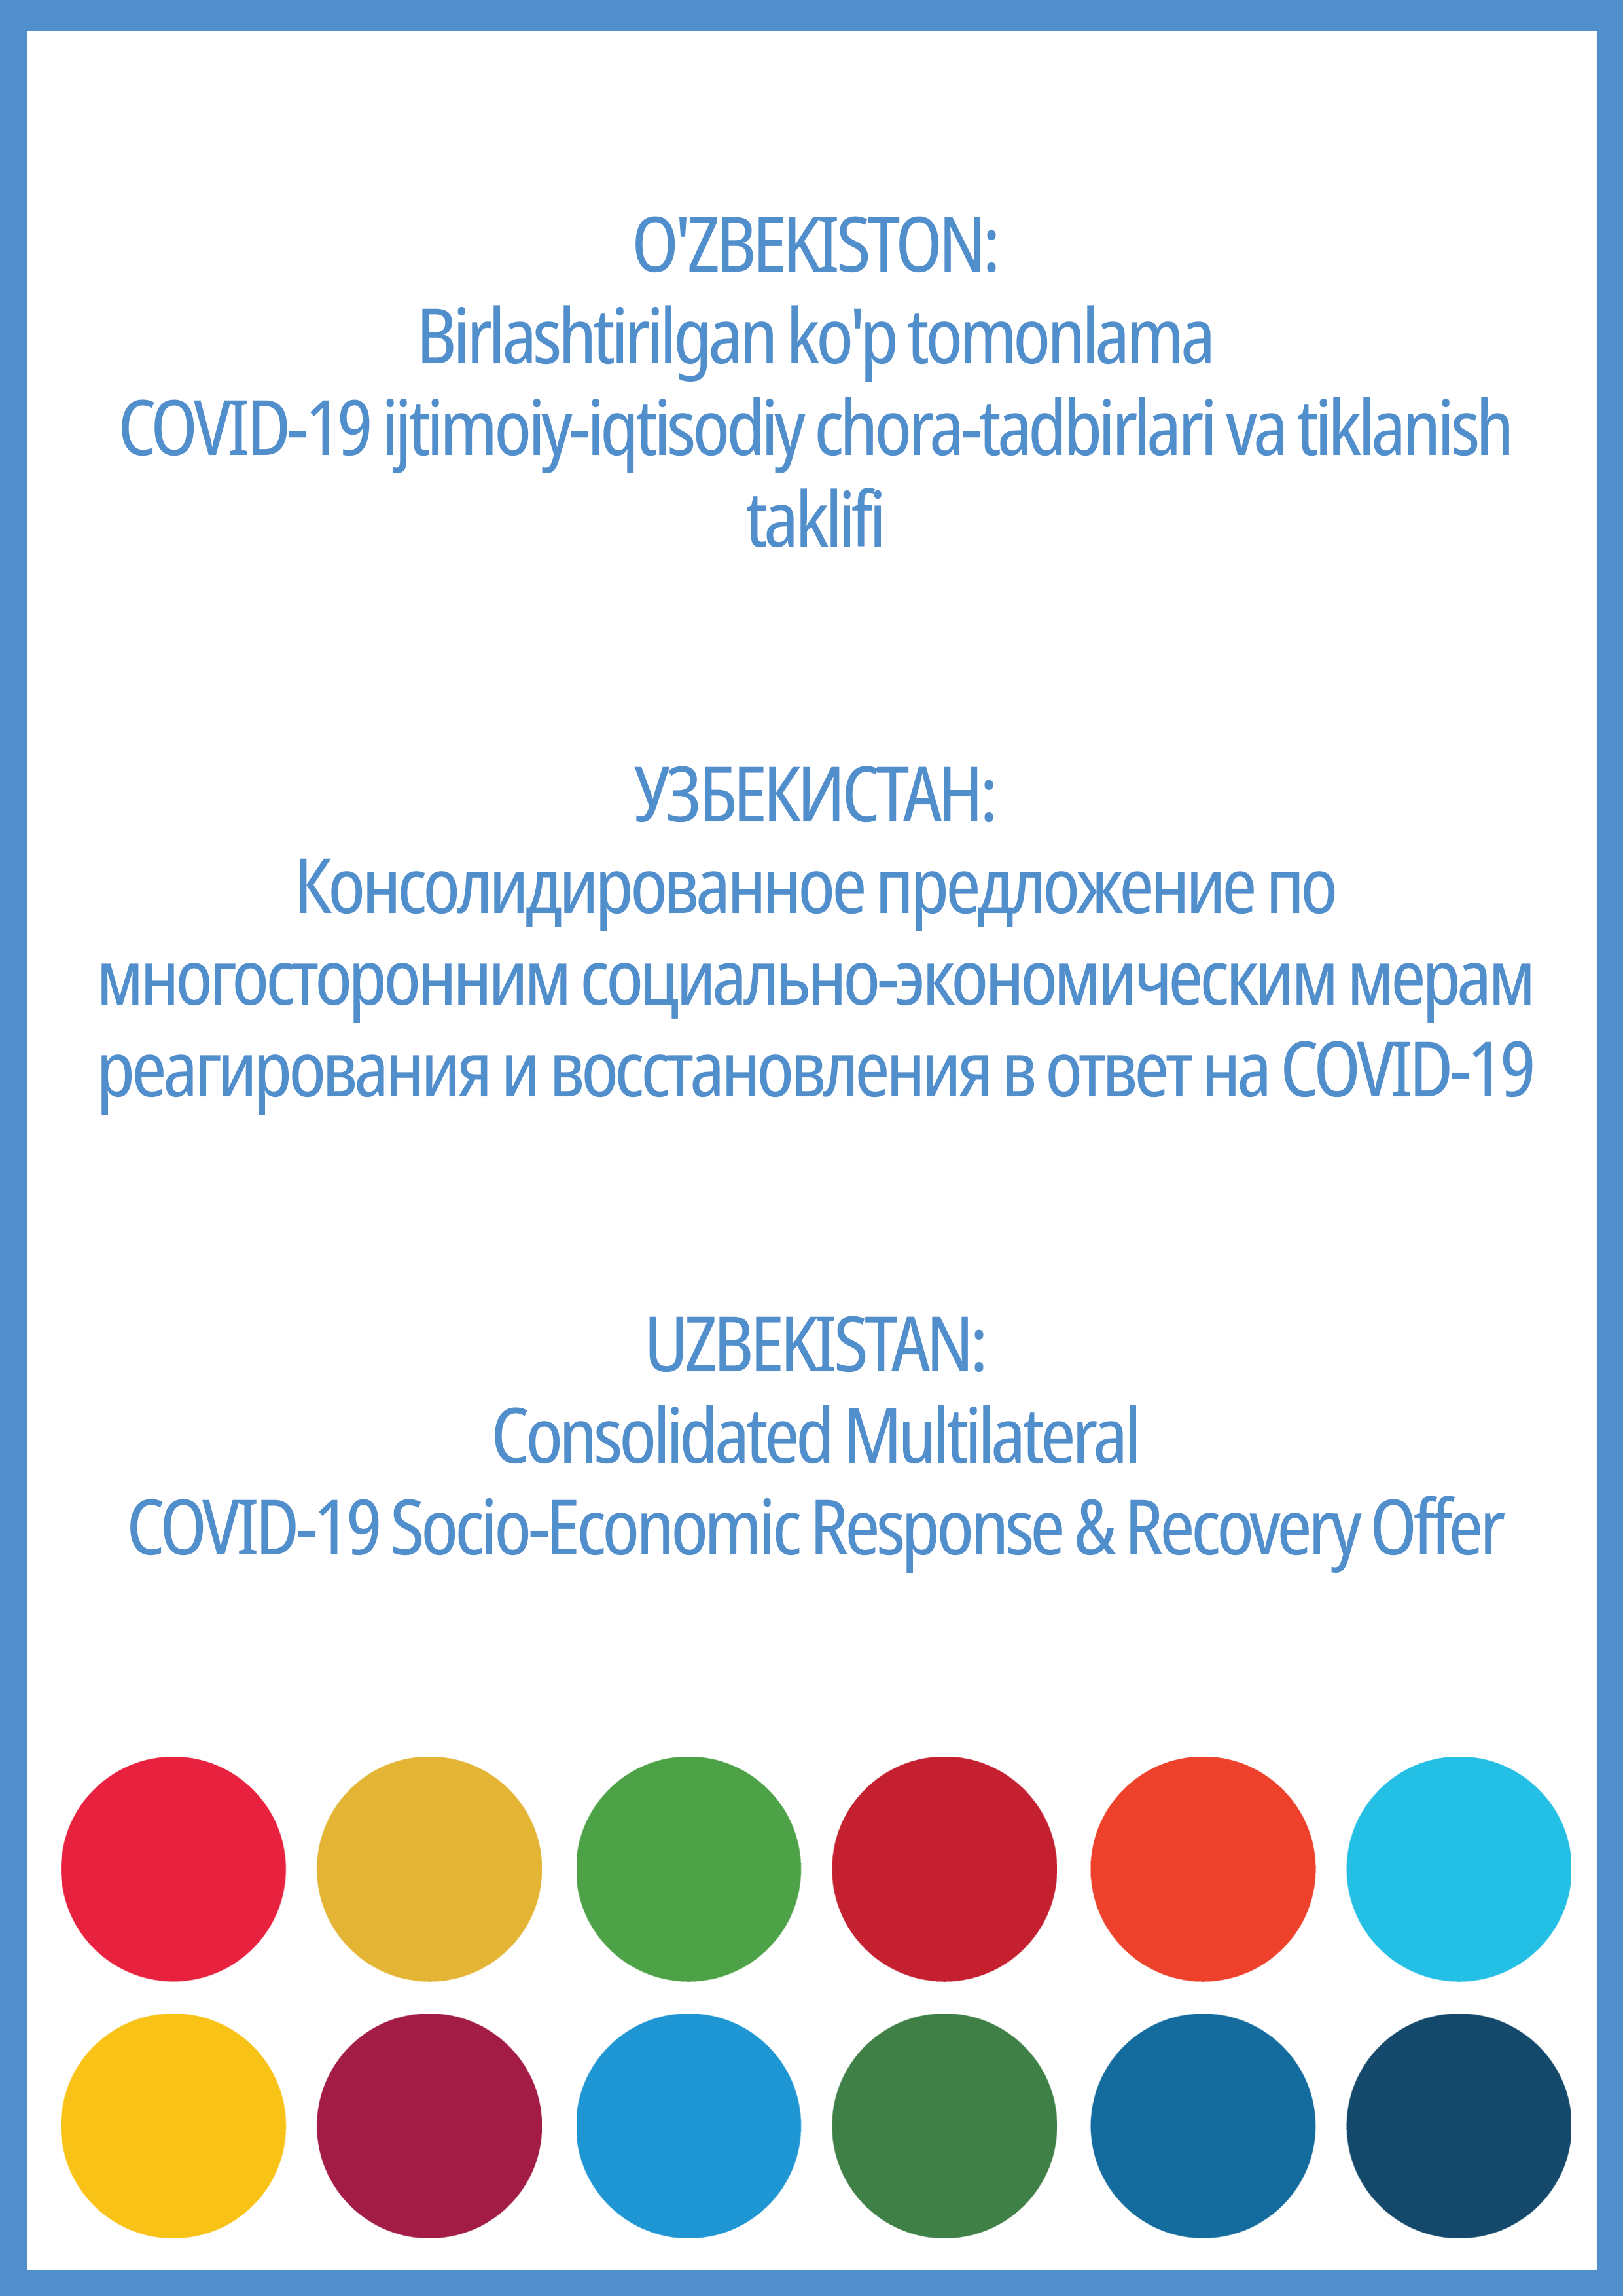 Consolidated Multilateral COVID-19 Socio-Economic Response & Recovery Offer to the Government of Uzbekistan